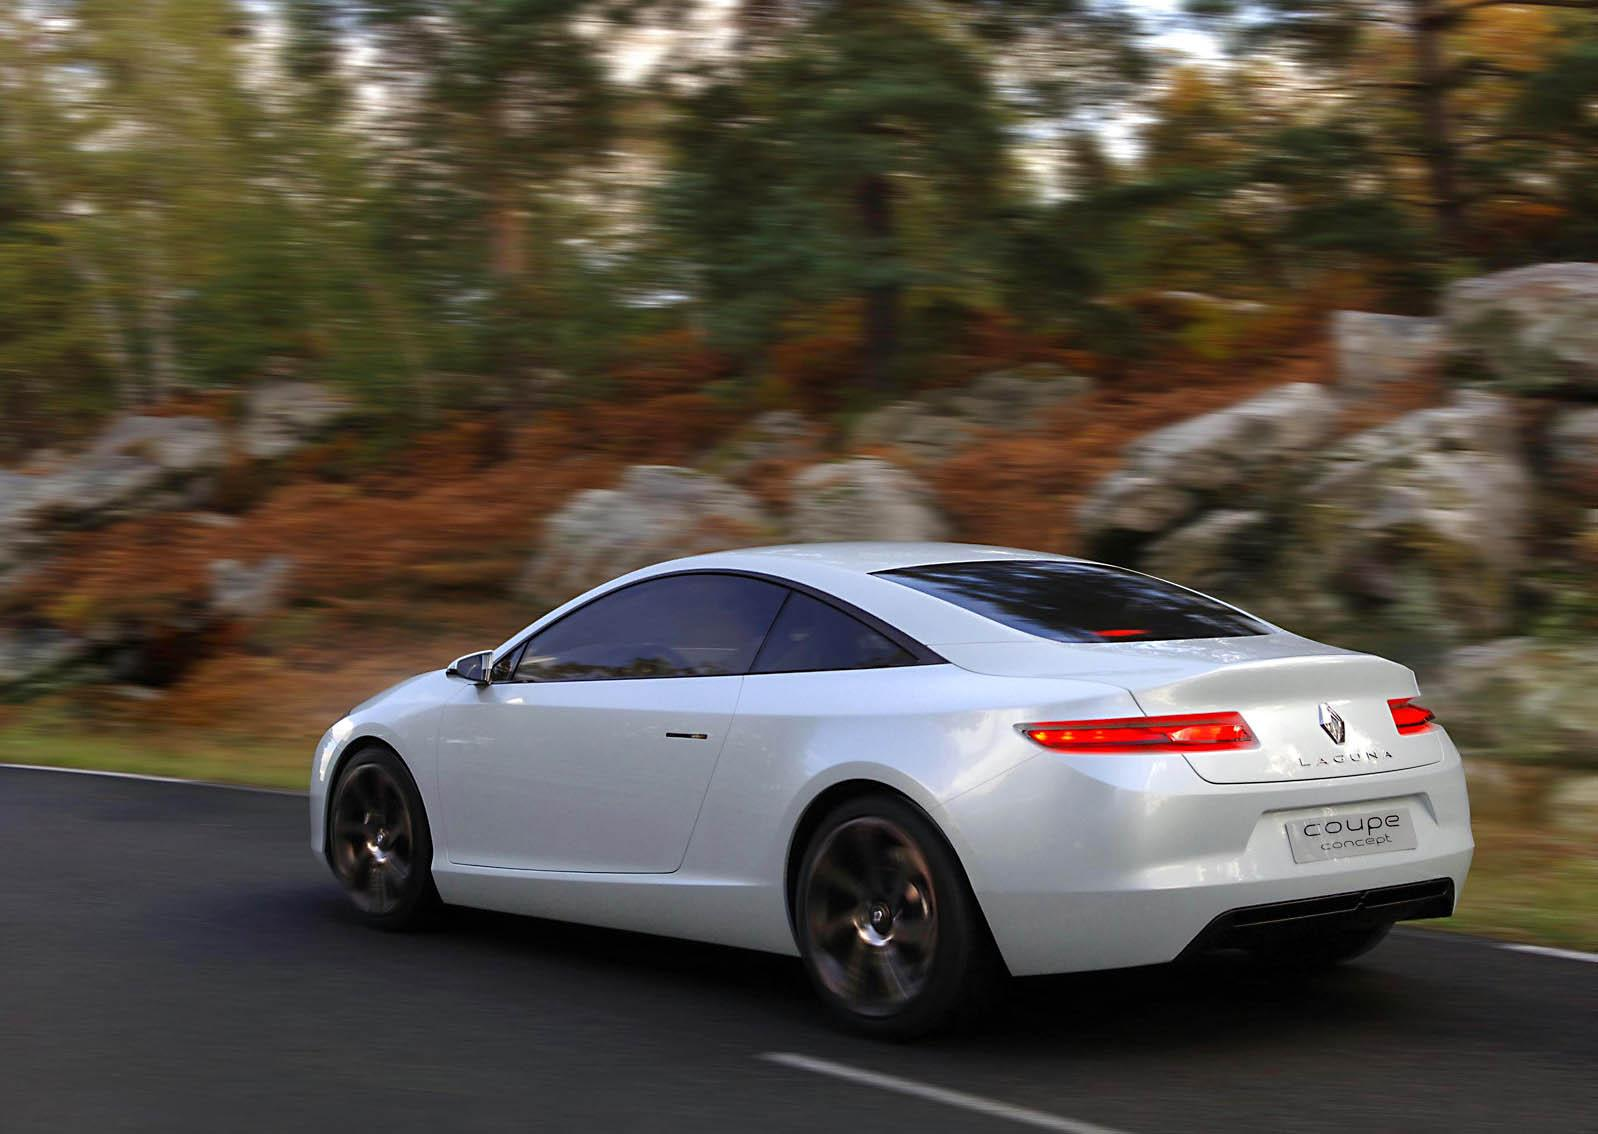 2008 renault laguna coup233 concept image httpswww